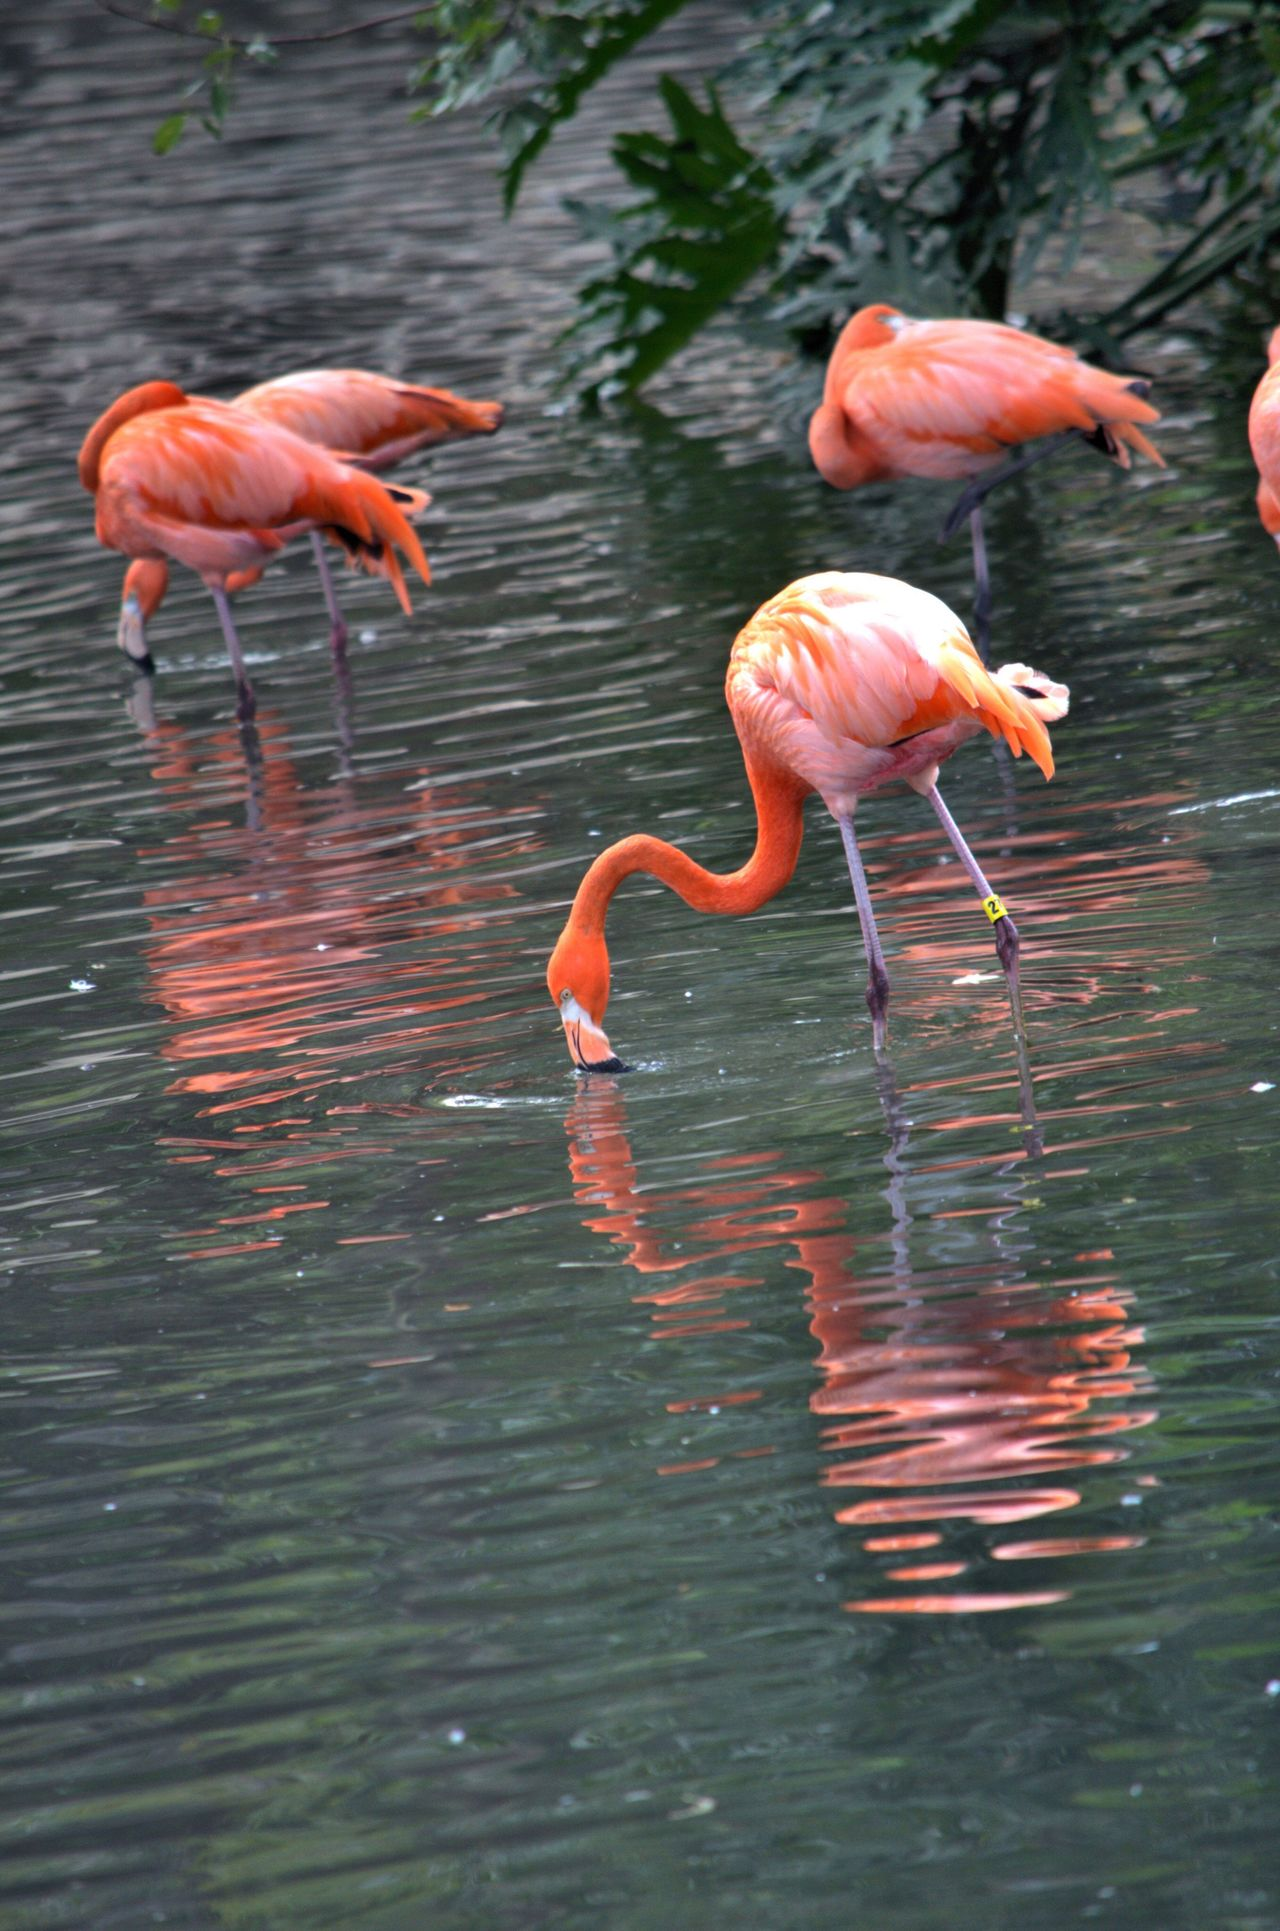 Flamingo Water Reflection Bird Nature Beauty In Nature San Antonio Zoo San Antonio, Texas Flamingos Animal Light And Reflection